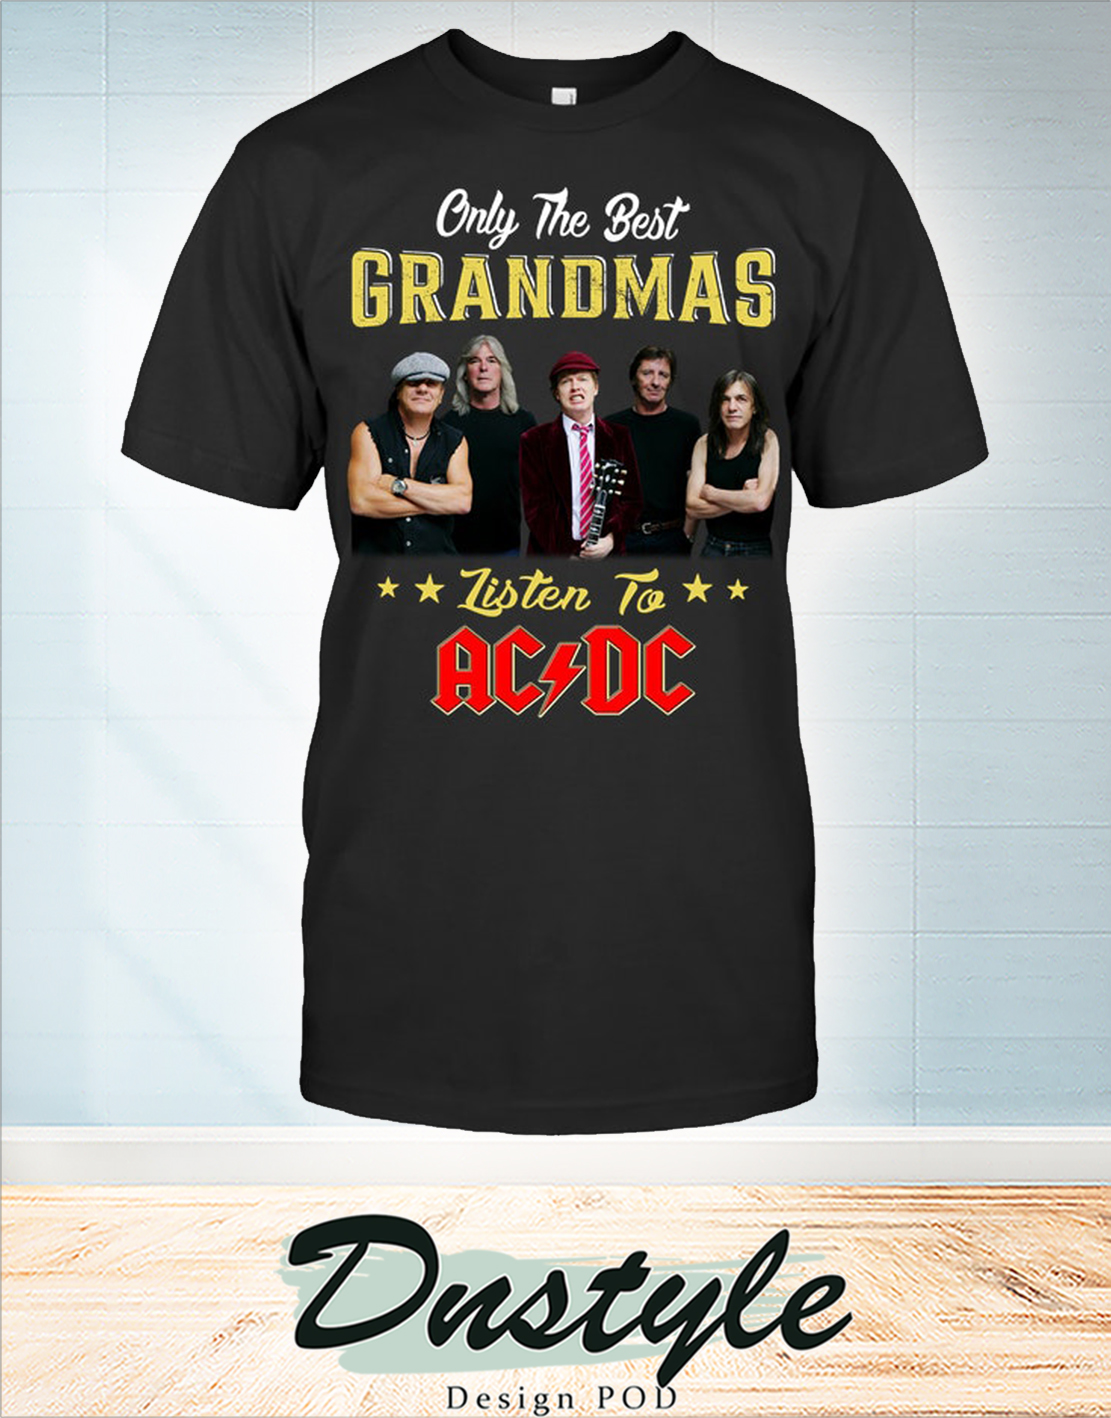 Only the best grandmas listen to ACDC t-shirt